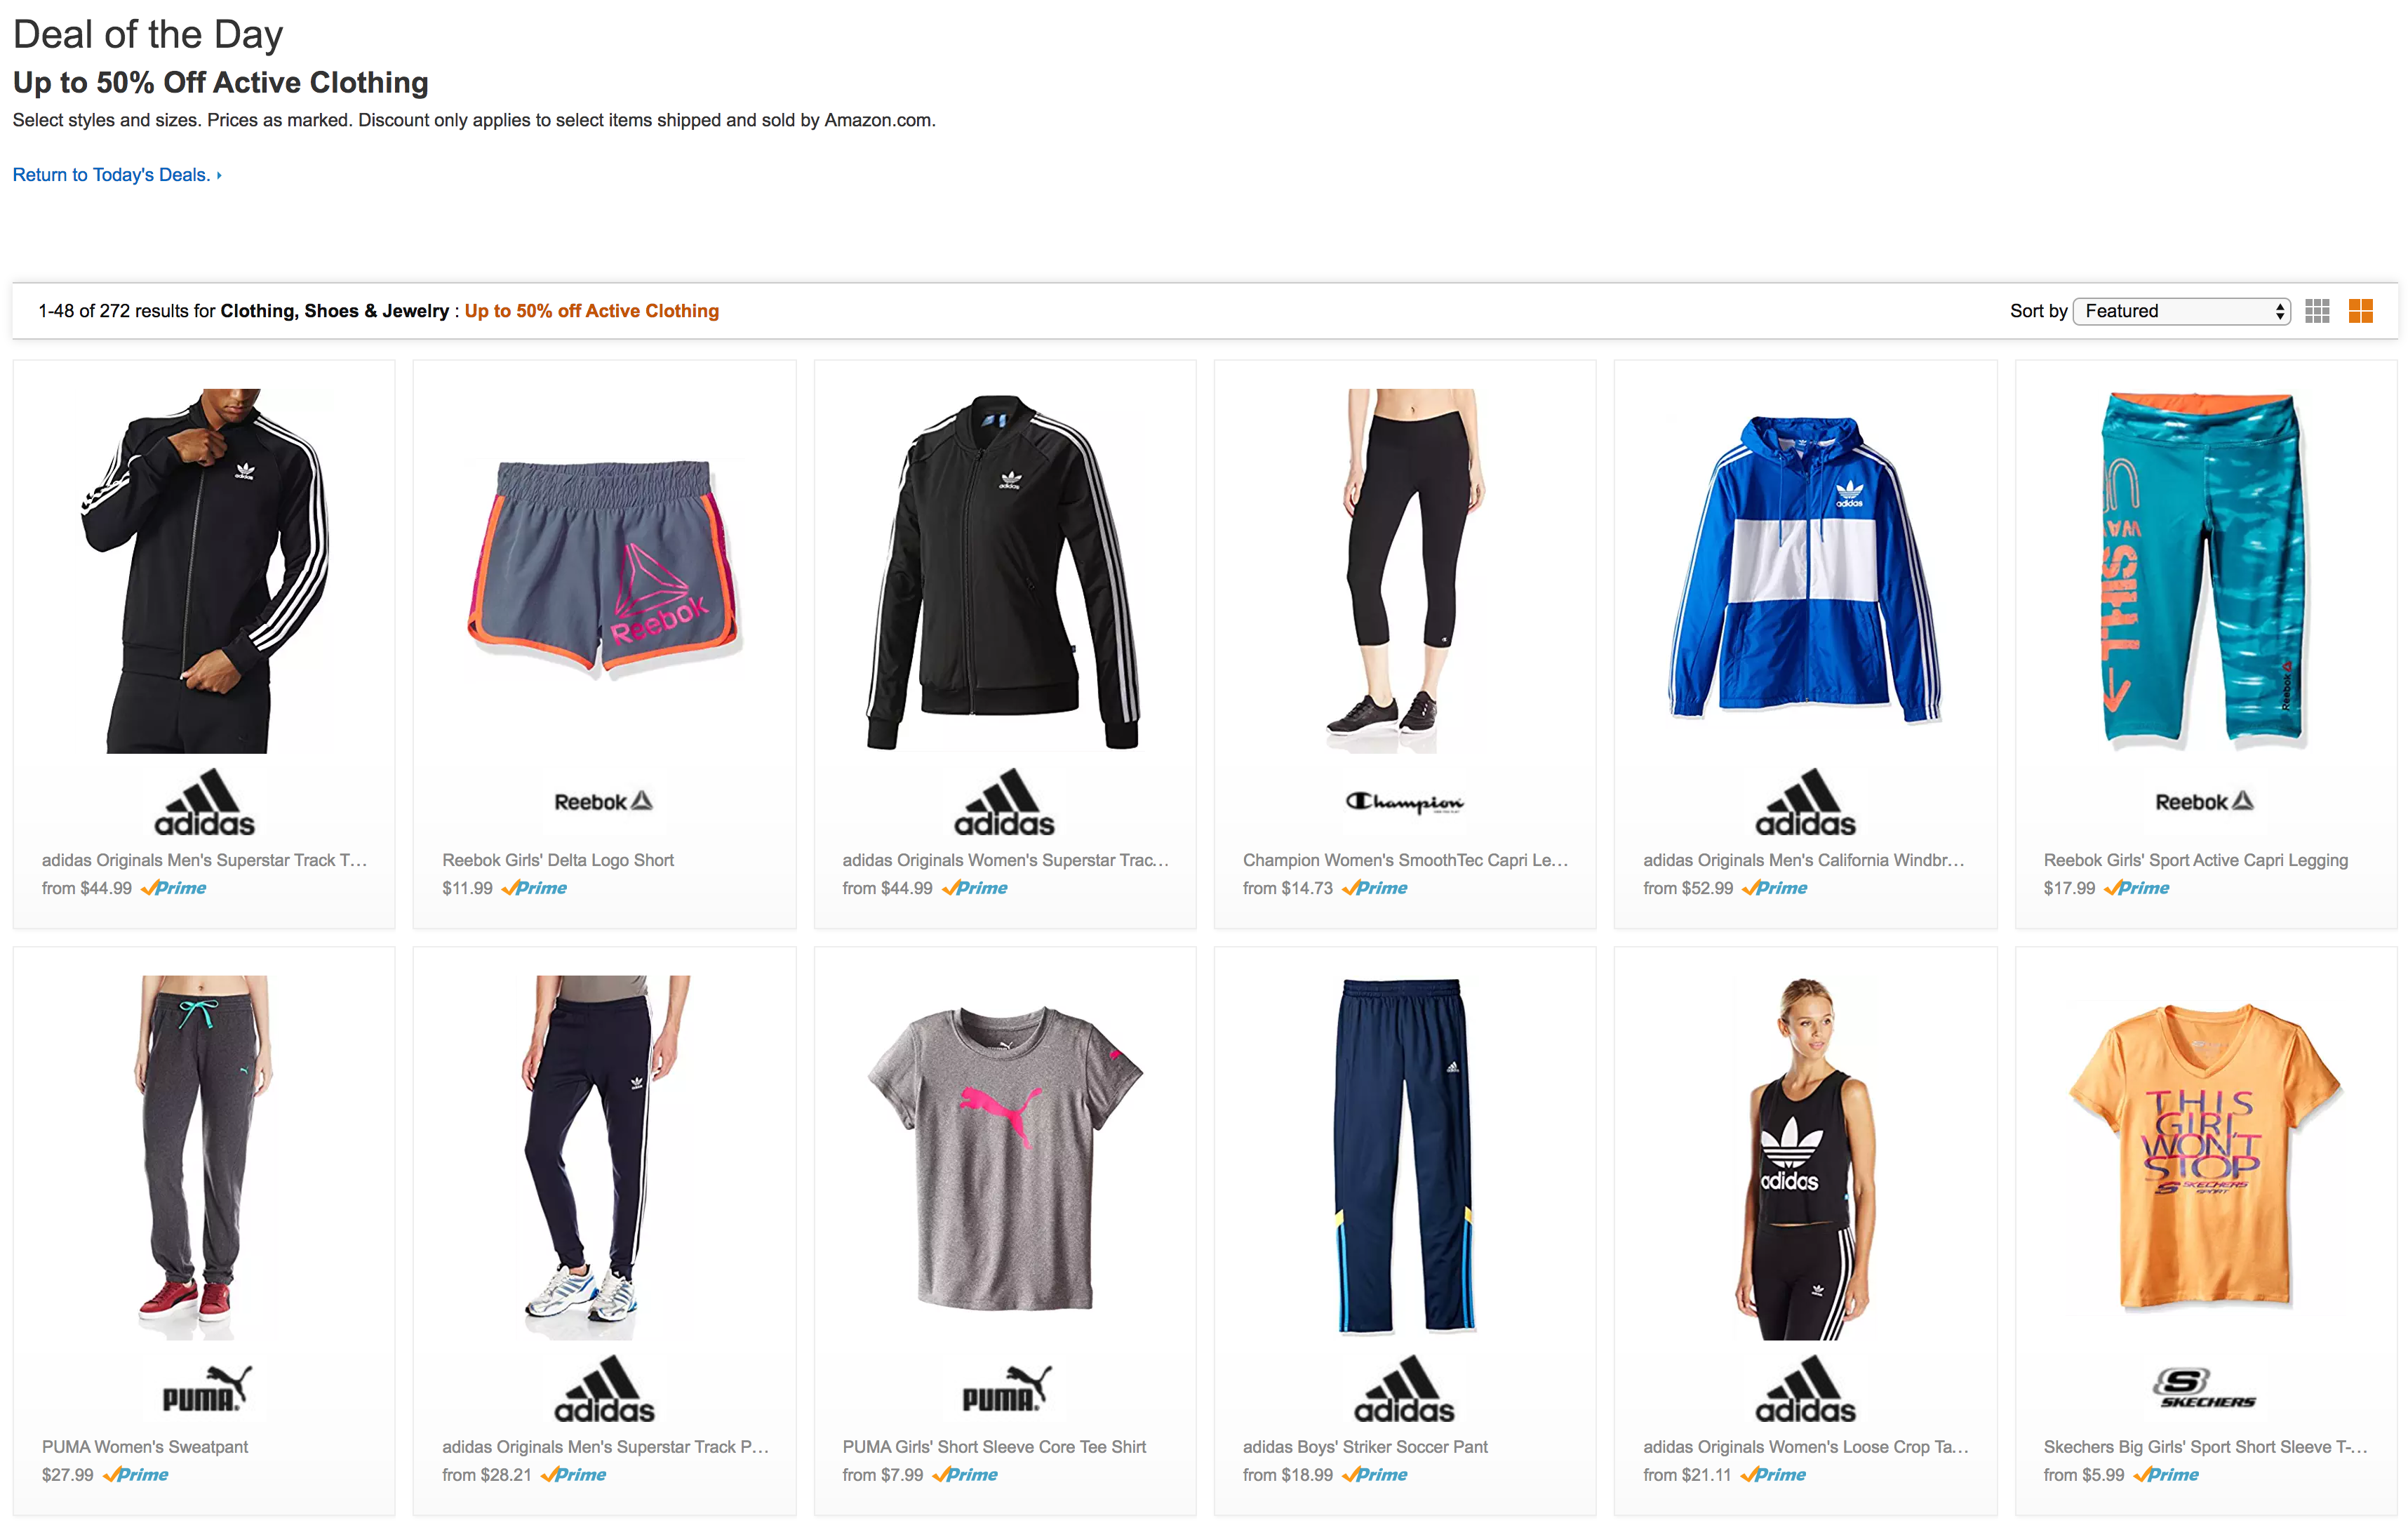 ecb7306873f77 Activewear from adidas, PUMA and more up to 50% off on Amazon today ...